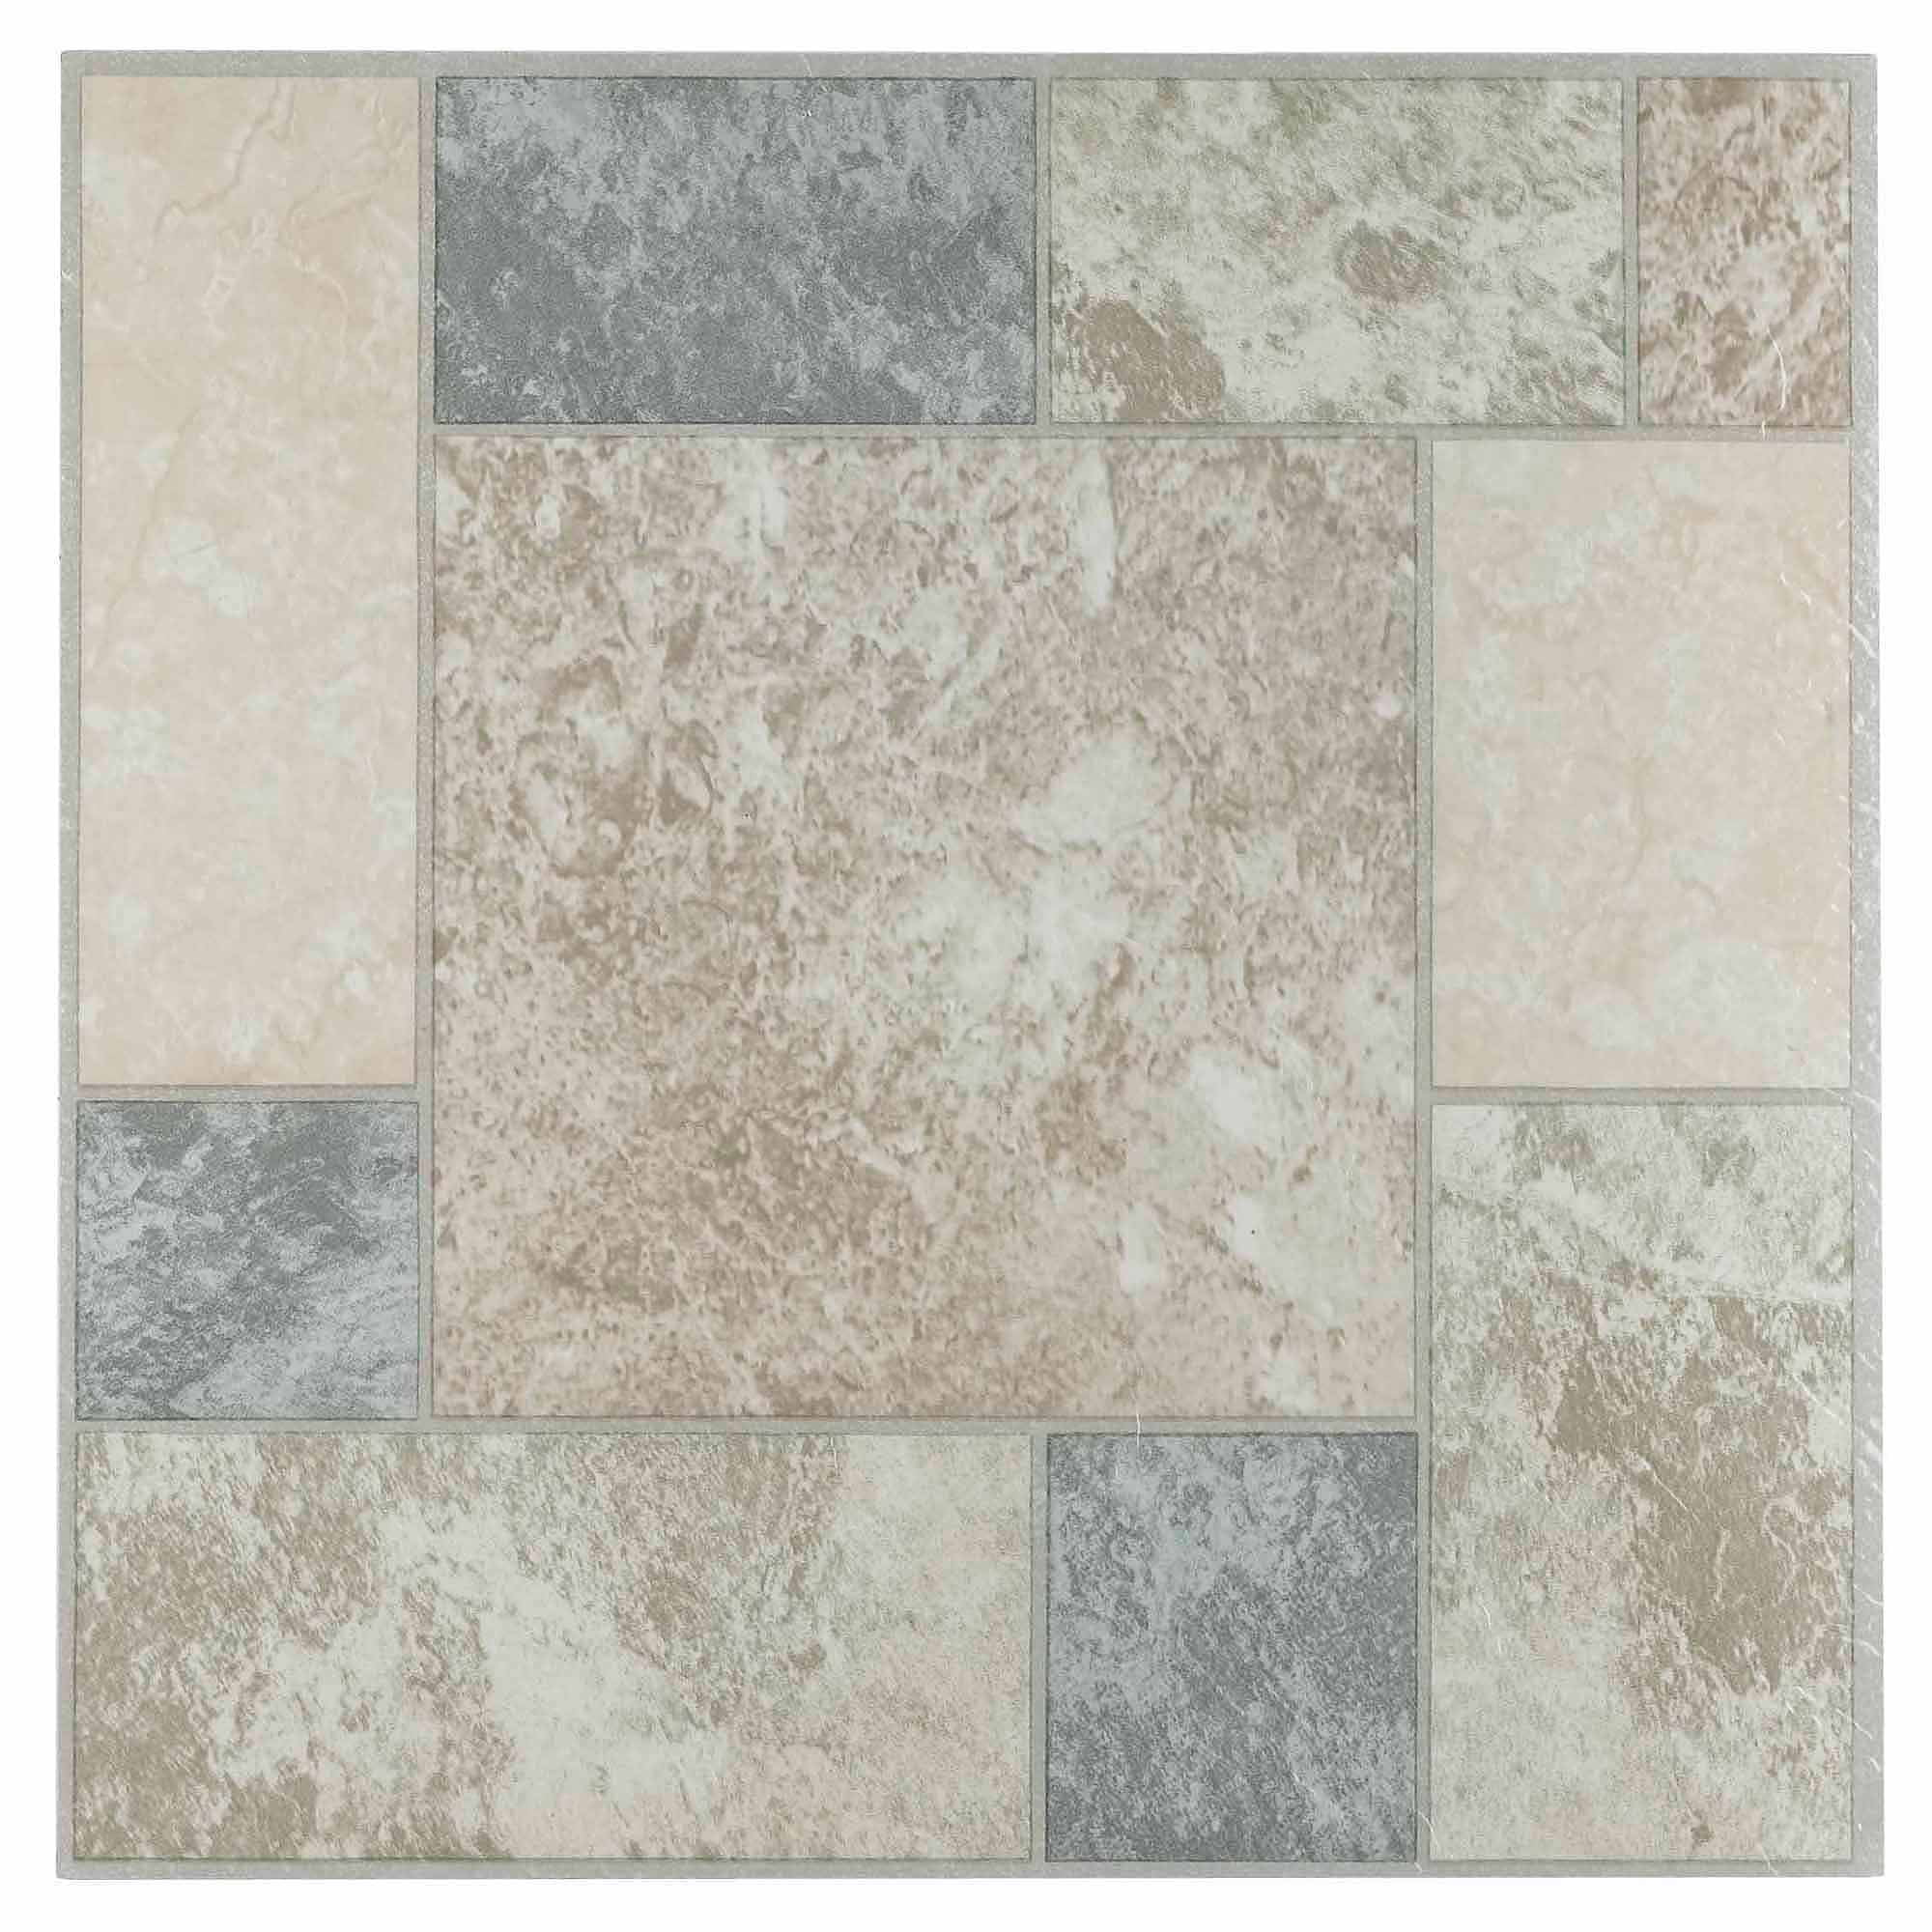 Nexus Ancient Beige Mosaic 12x12 Self Adhesive Vinyl Floor Tile - 20 ...